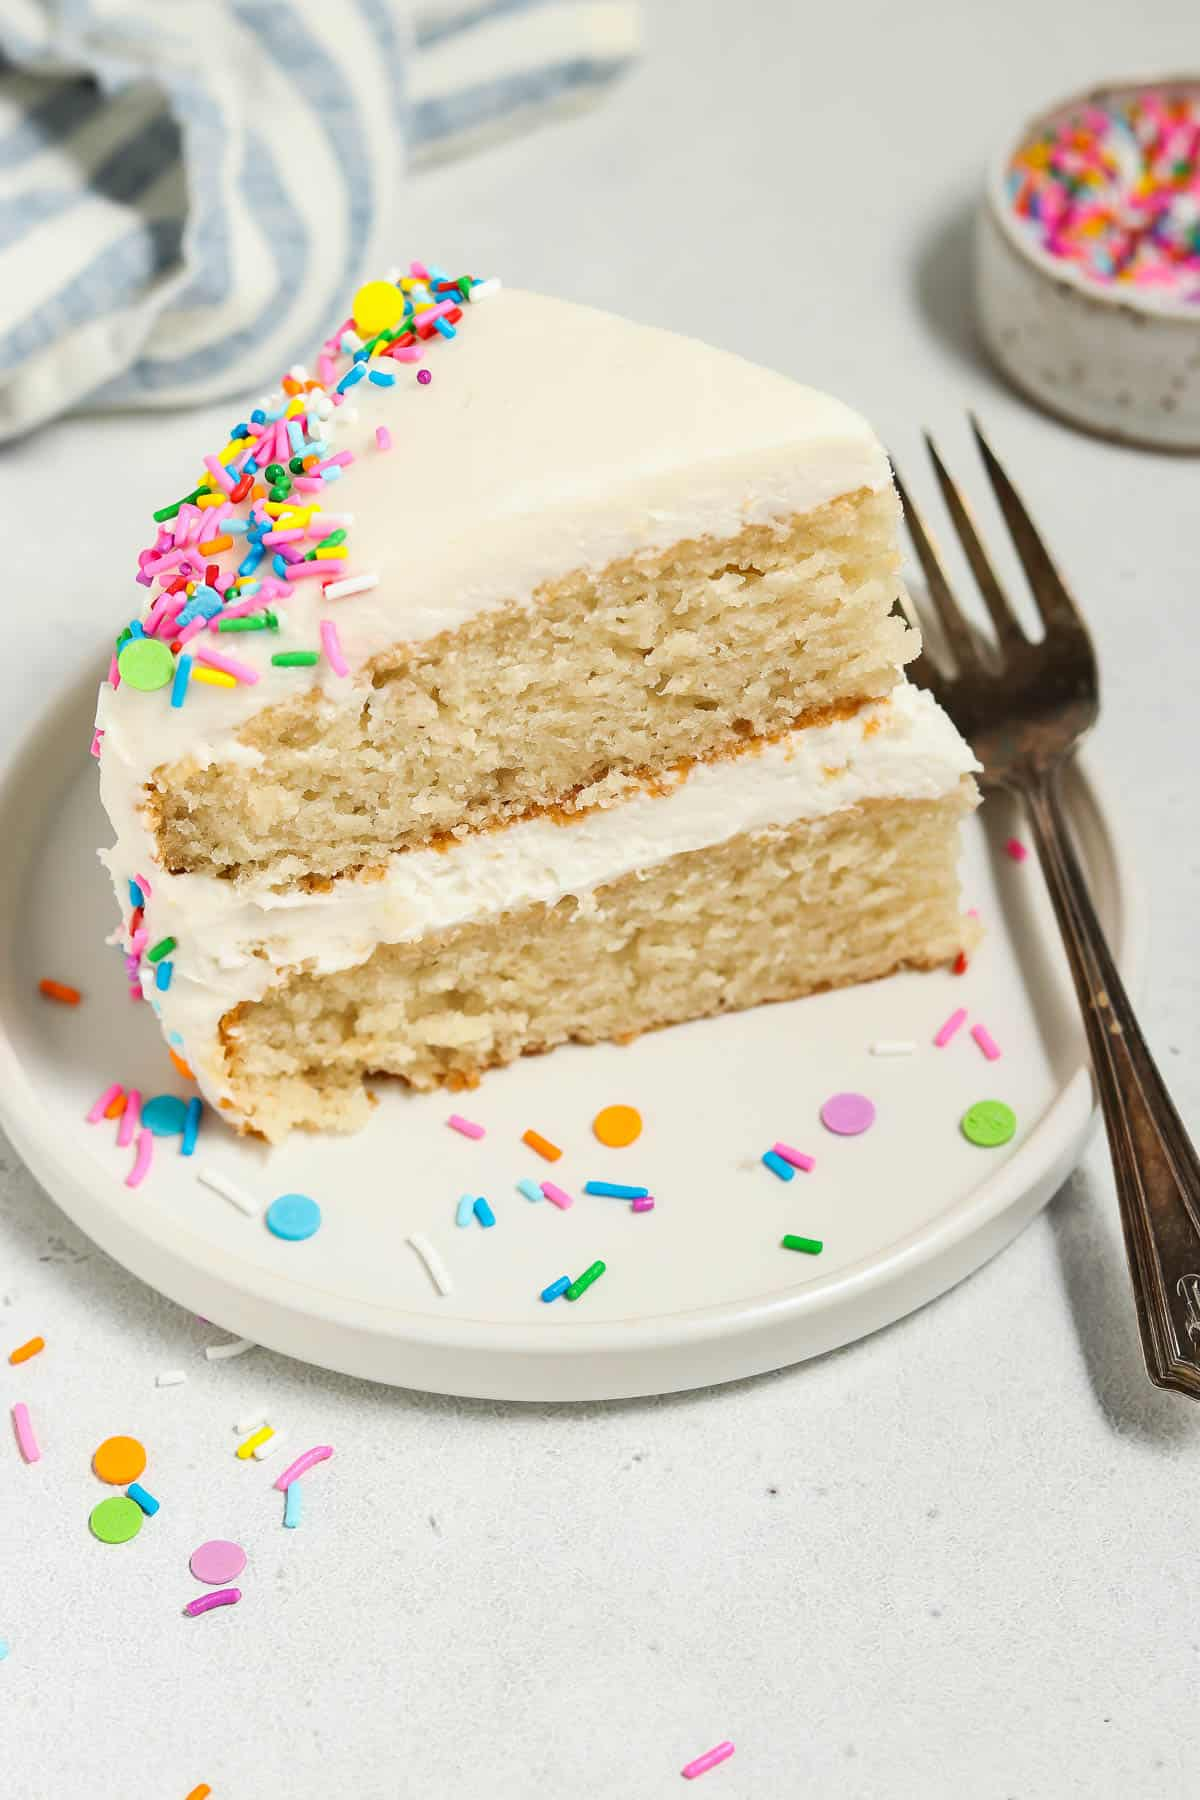 Overhead view of a slice of vegan vanilla cake on a plate. Sprinkles and fork on the side.